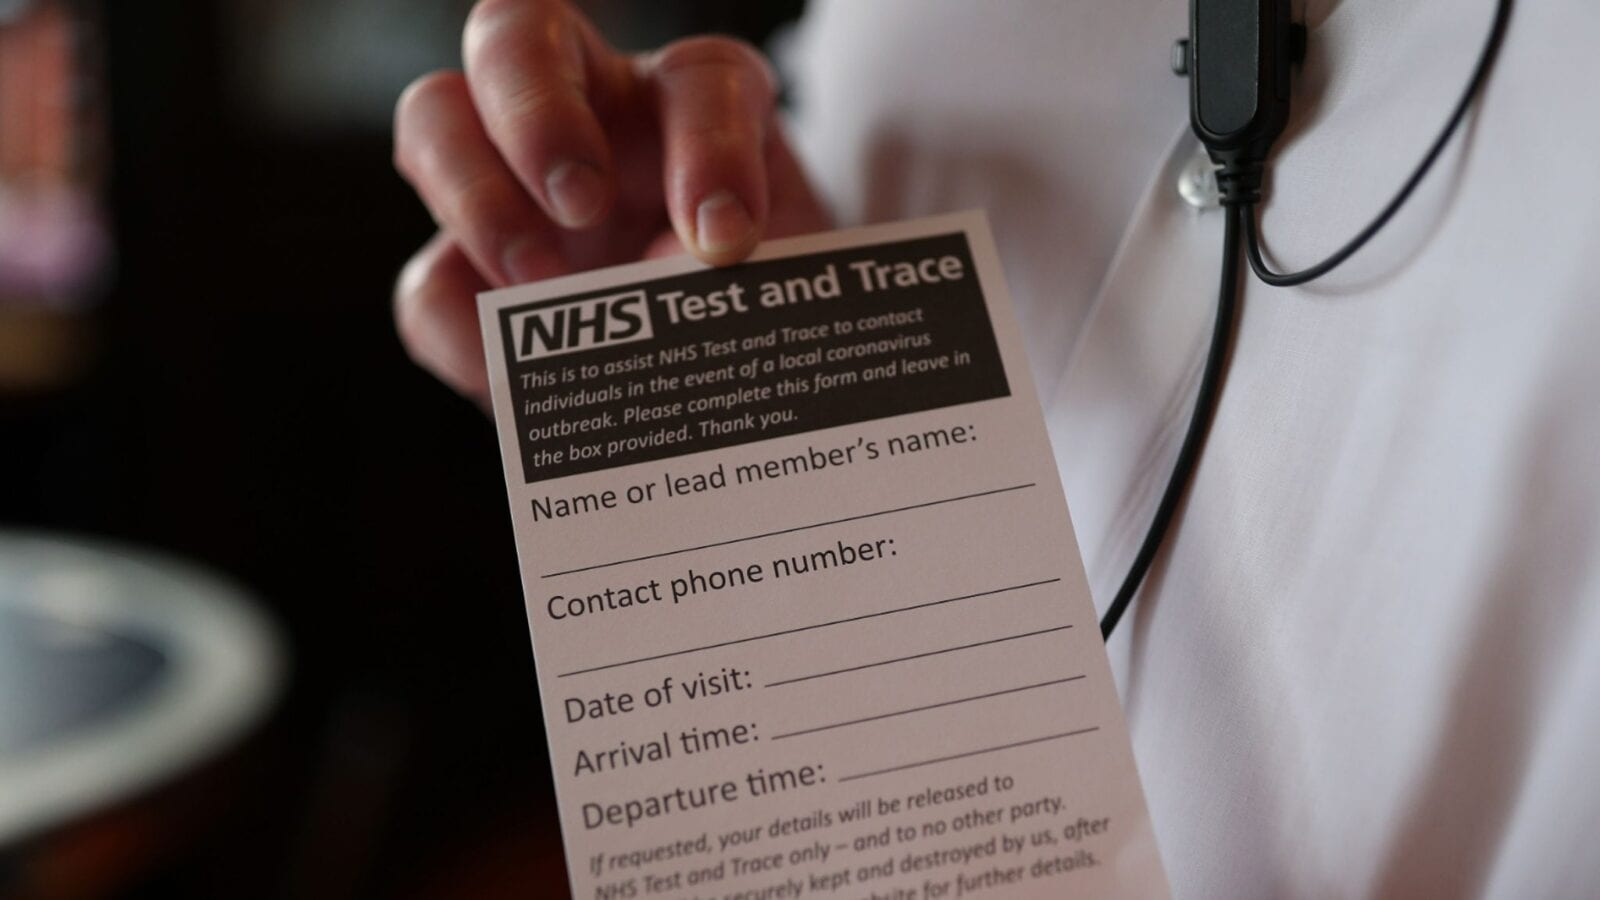 Police and fire service set to be drafted in to aid Test and Trace in Greater Manchester, The Manc